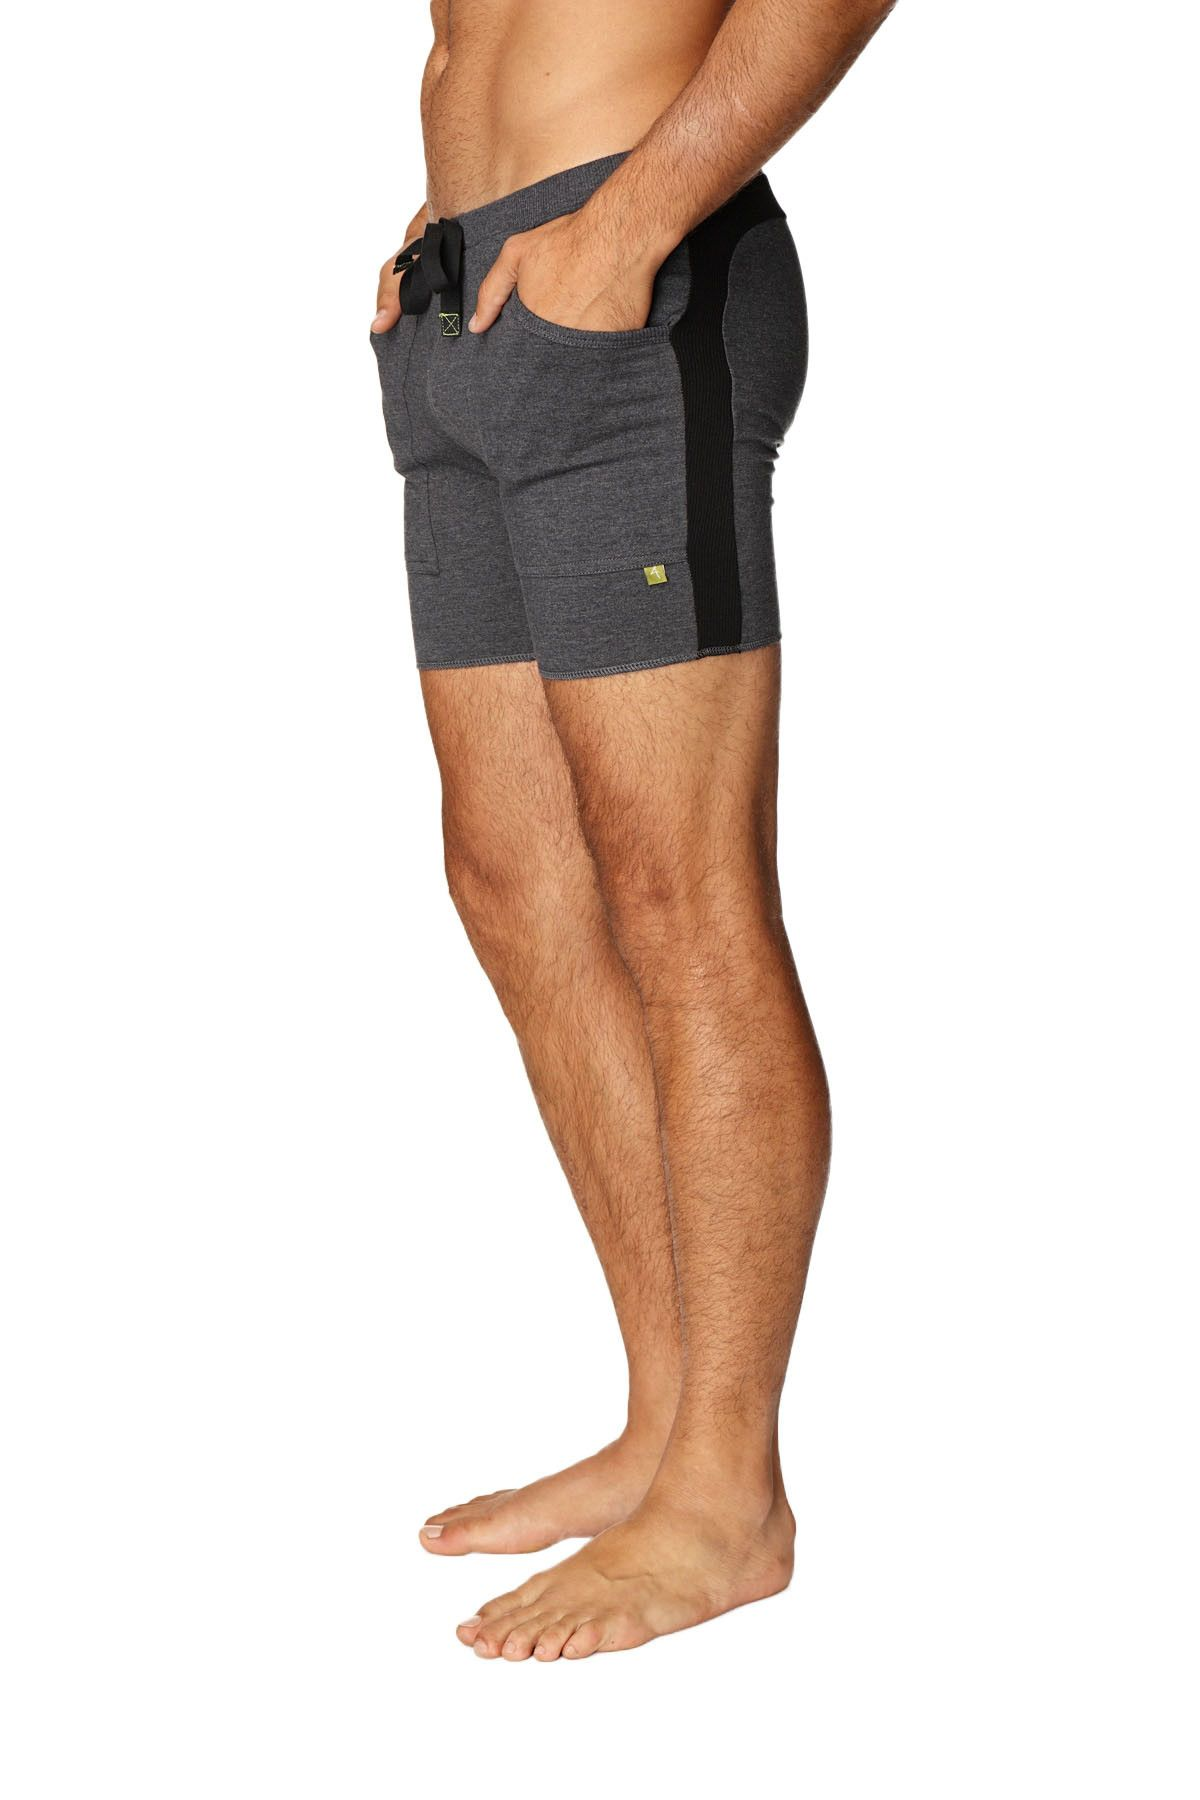 d369e5db4d0353 Transition Yoga Short (Charcoal w/Black) | Men's Athletic Wear ...